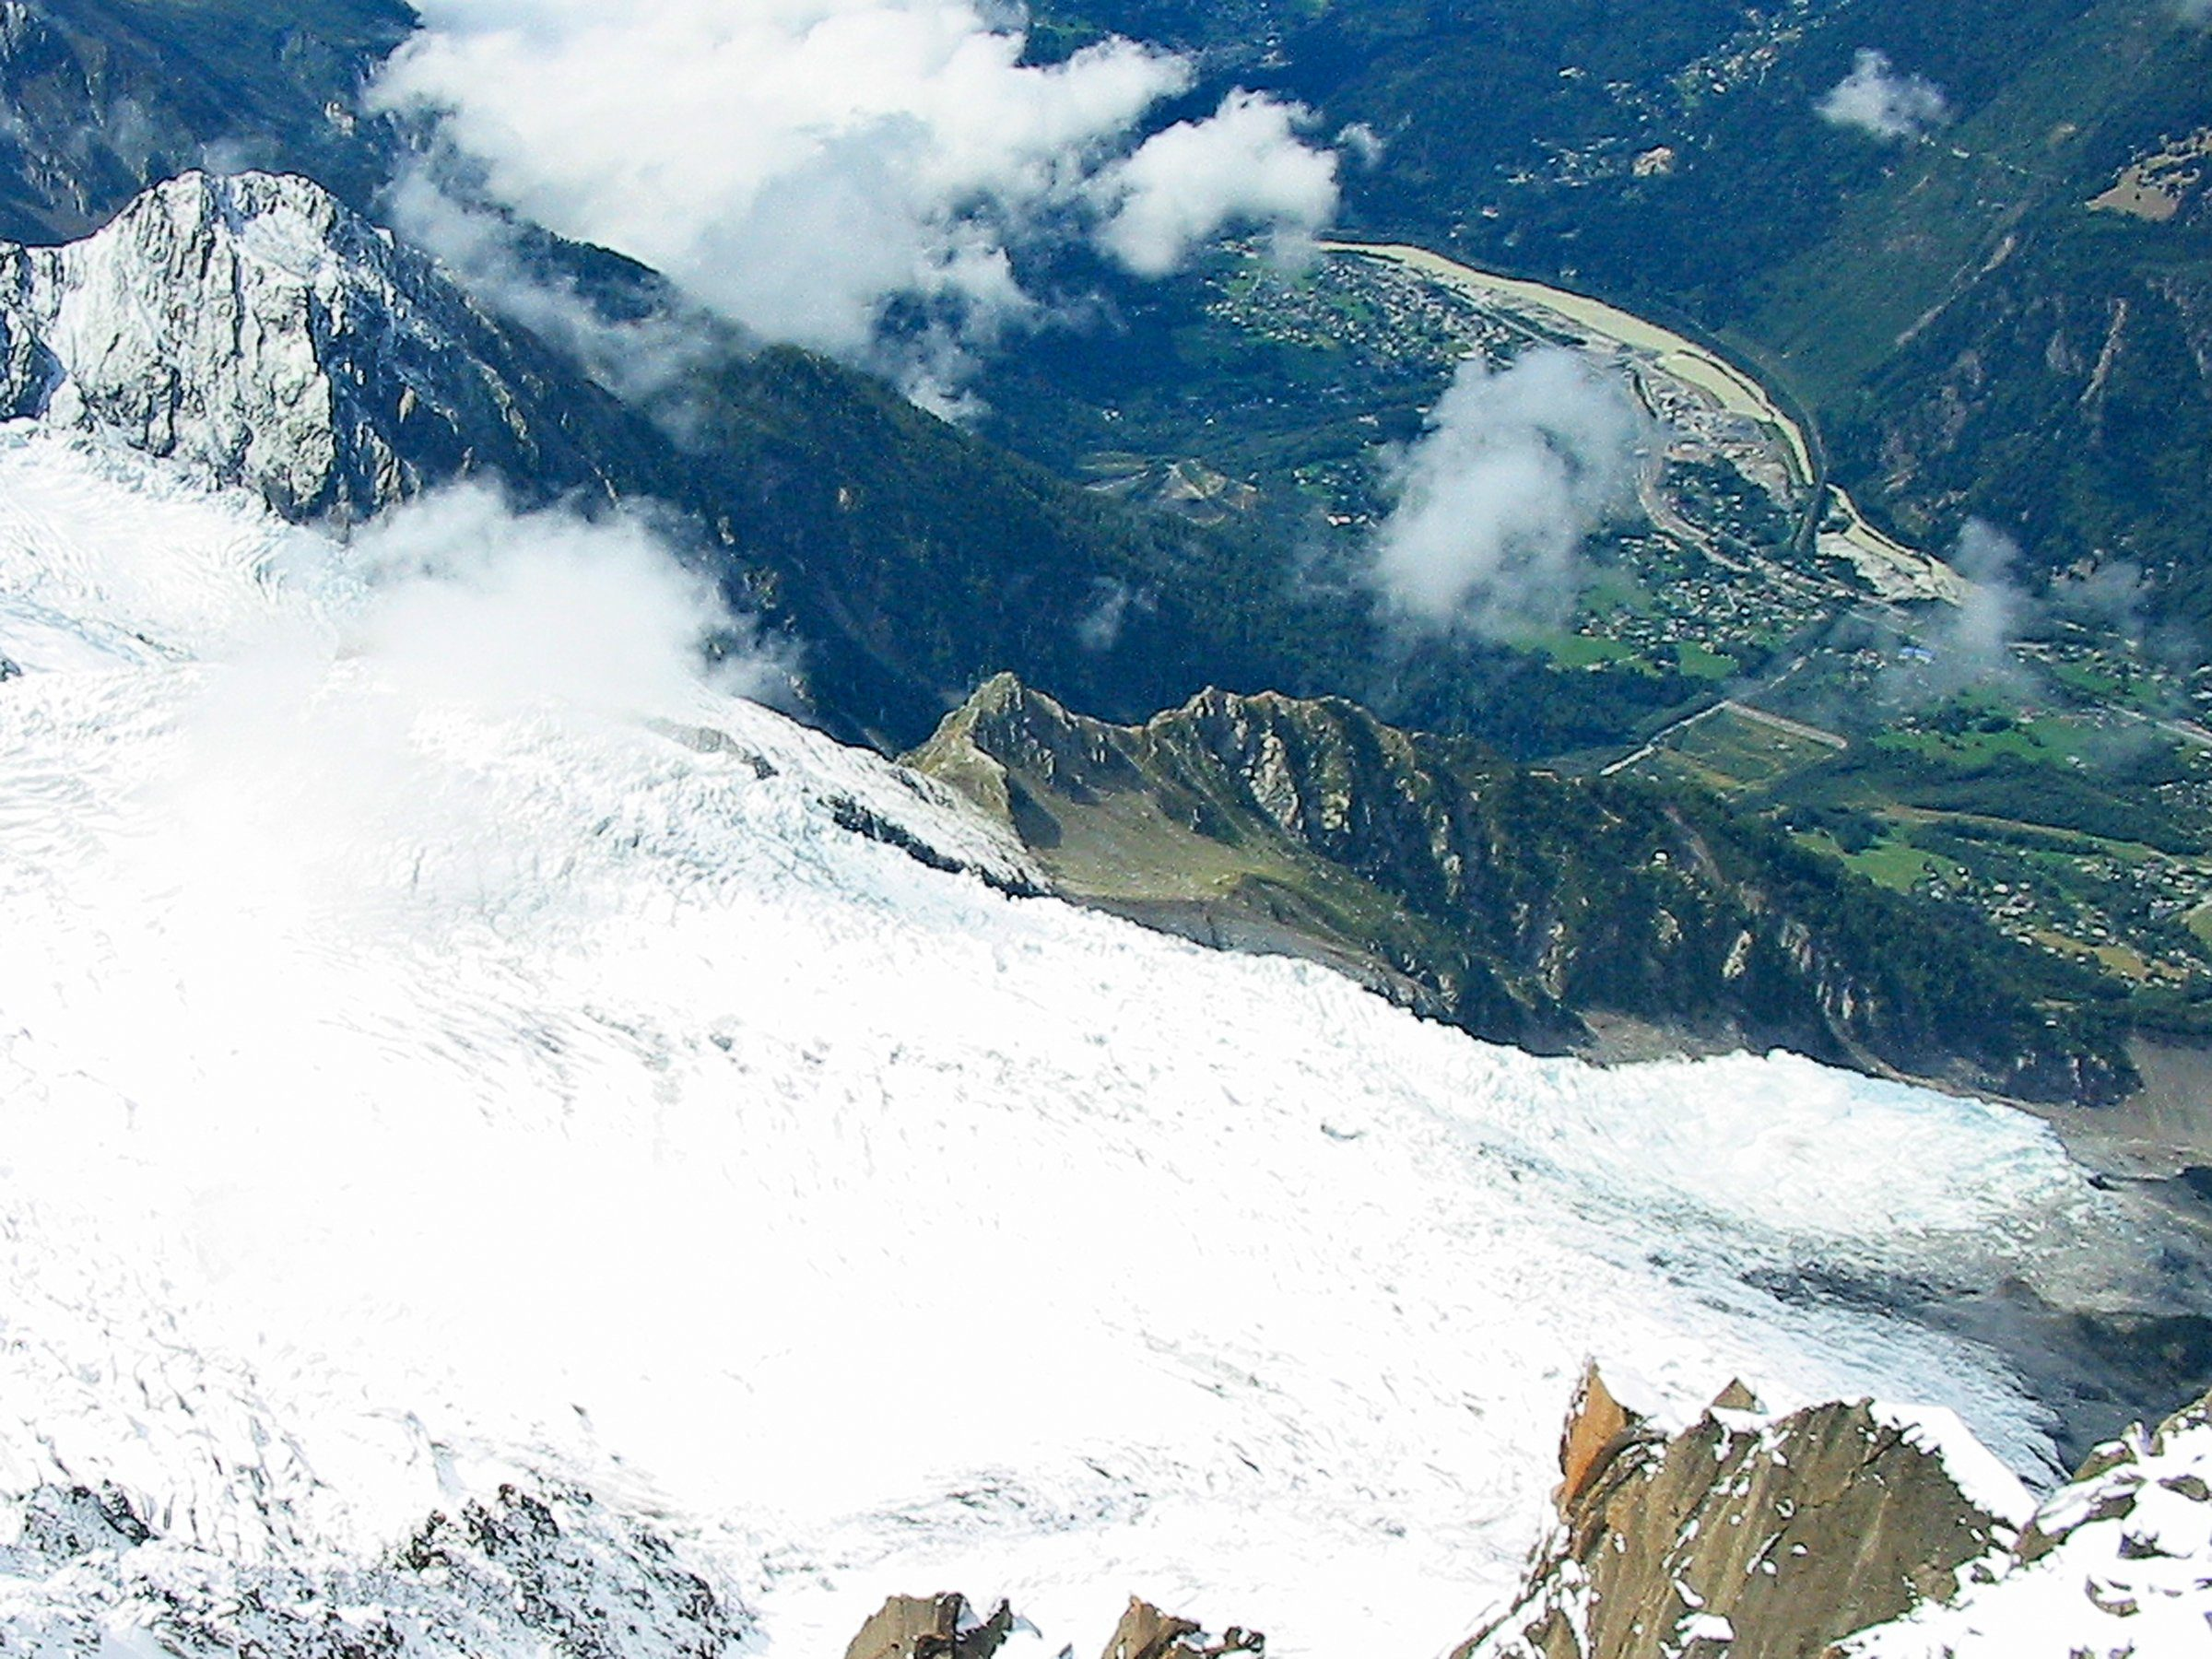 View Looking Down from Aiguille du Midi, near Chamonix France